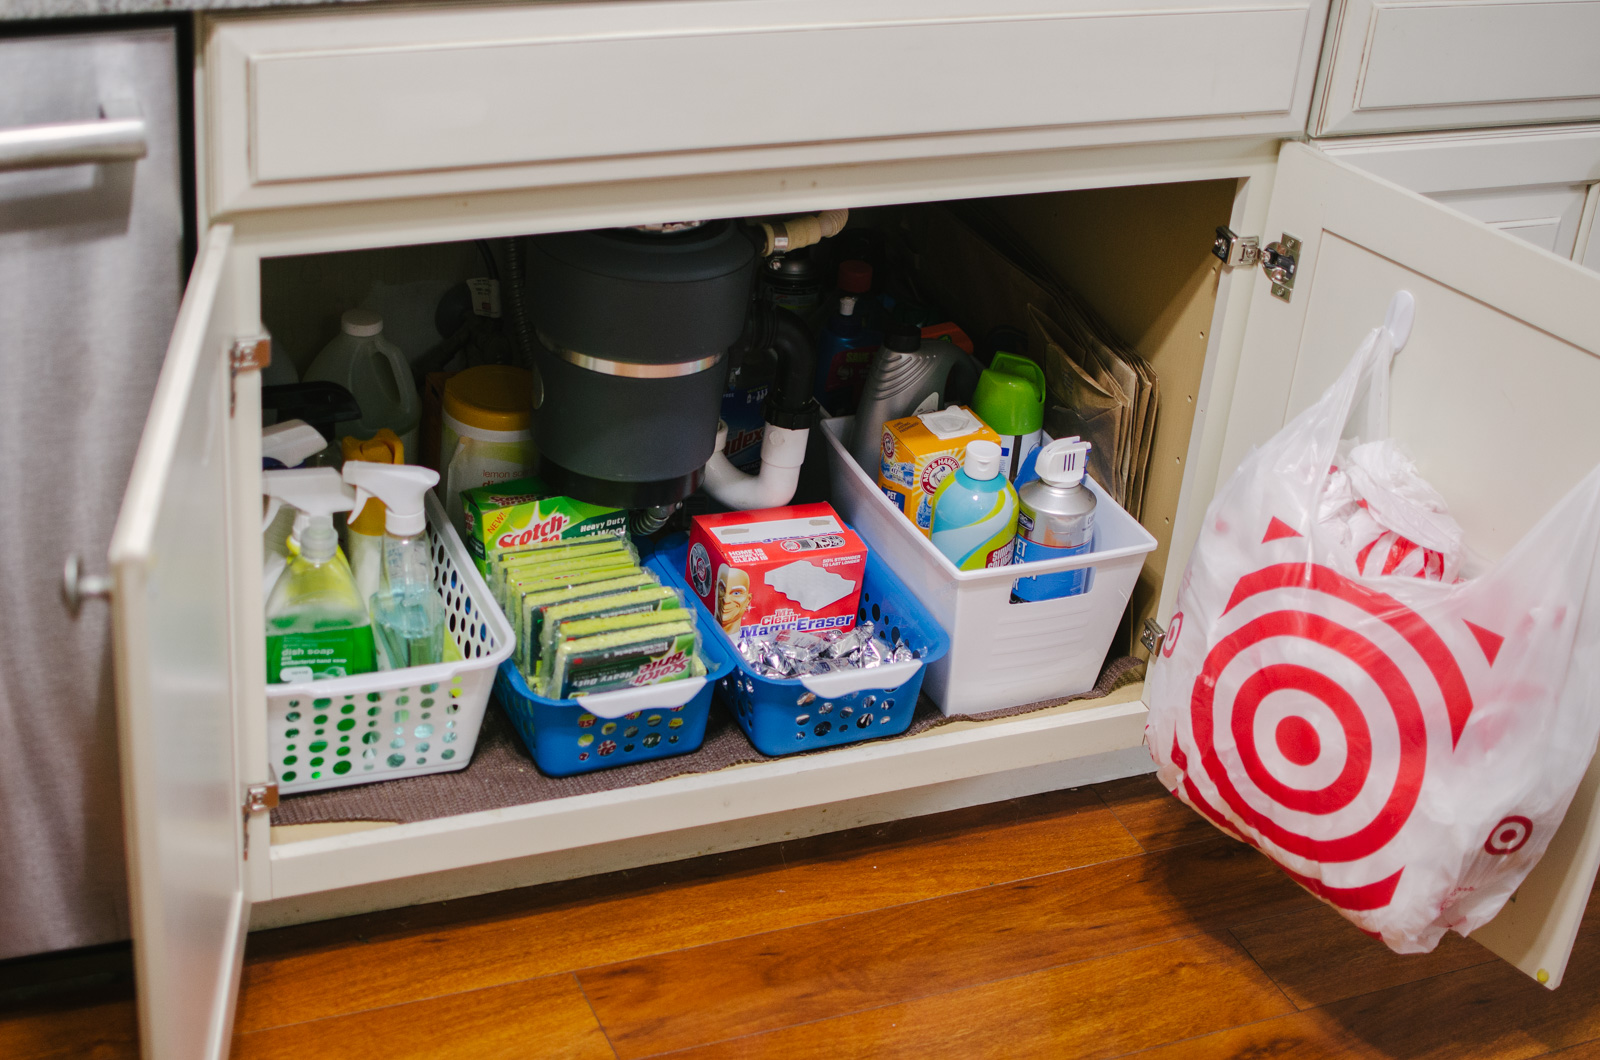 under the sink kitchen organization - You're going to love this kitchen organization before and after! Spend $5 and completely revamp your under sink cabinets! | bylaurenm.com